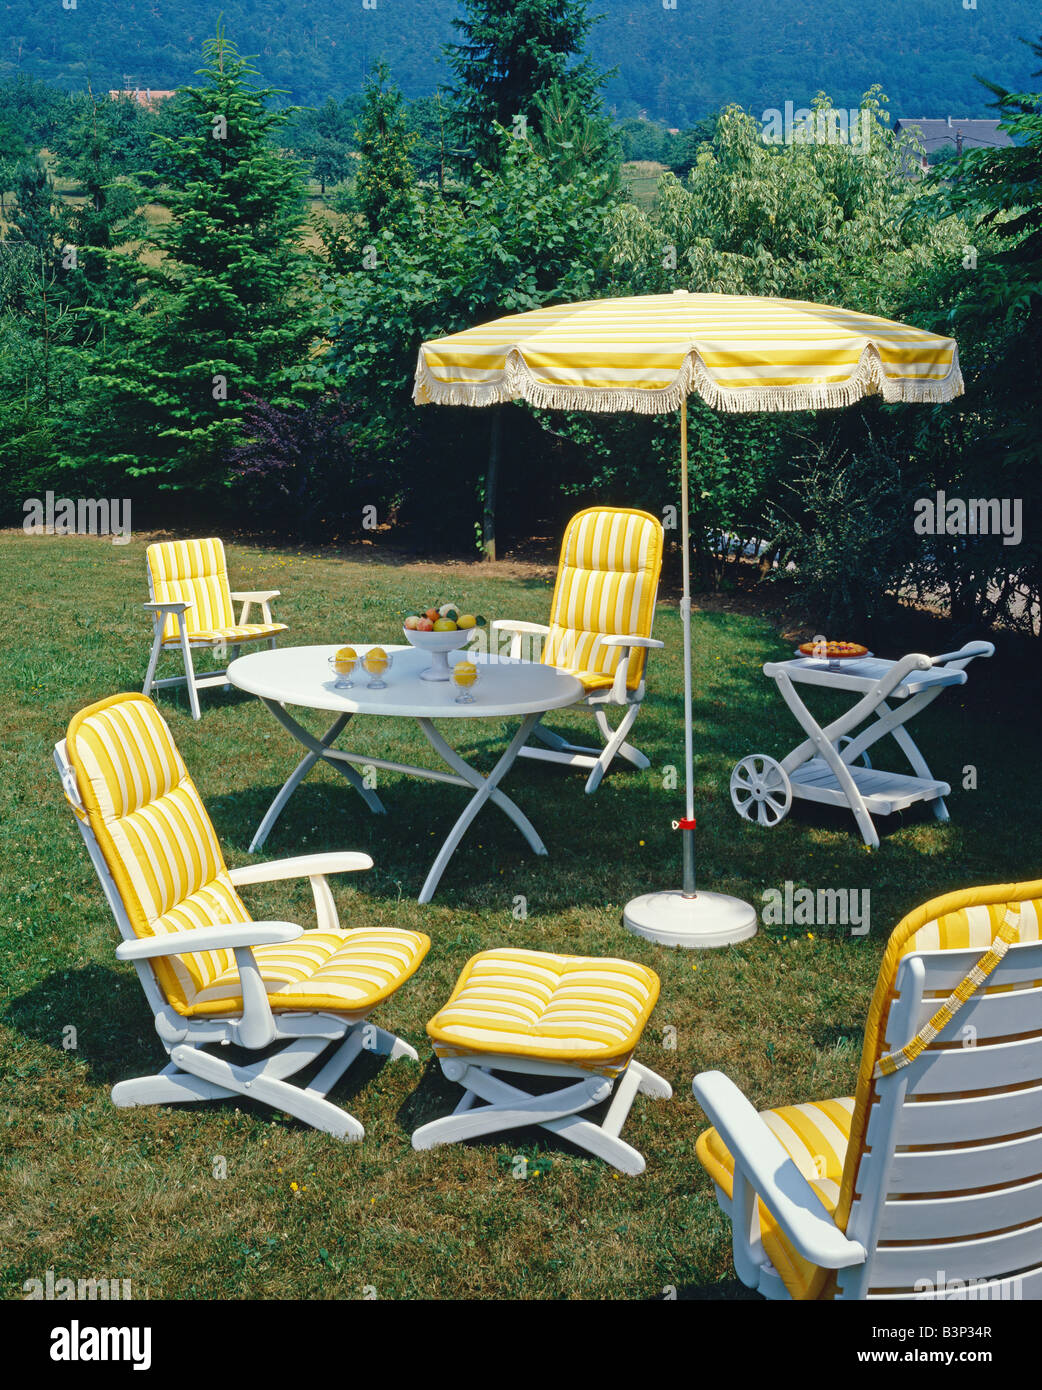 GARDEN FURNITURE CHAIR ARMCHAIRS AND PARASOL DECORATED WITH YELLOW STRIPED  FABRIC. GARDEN FURNITURE CHAIR ARMCHAIRS AND PARASOL DECORATED WITH YELLOW